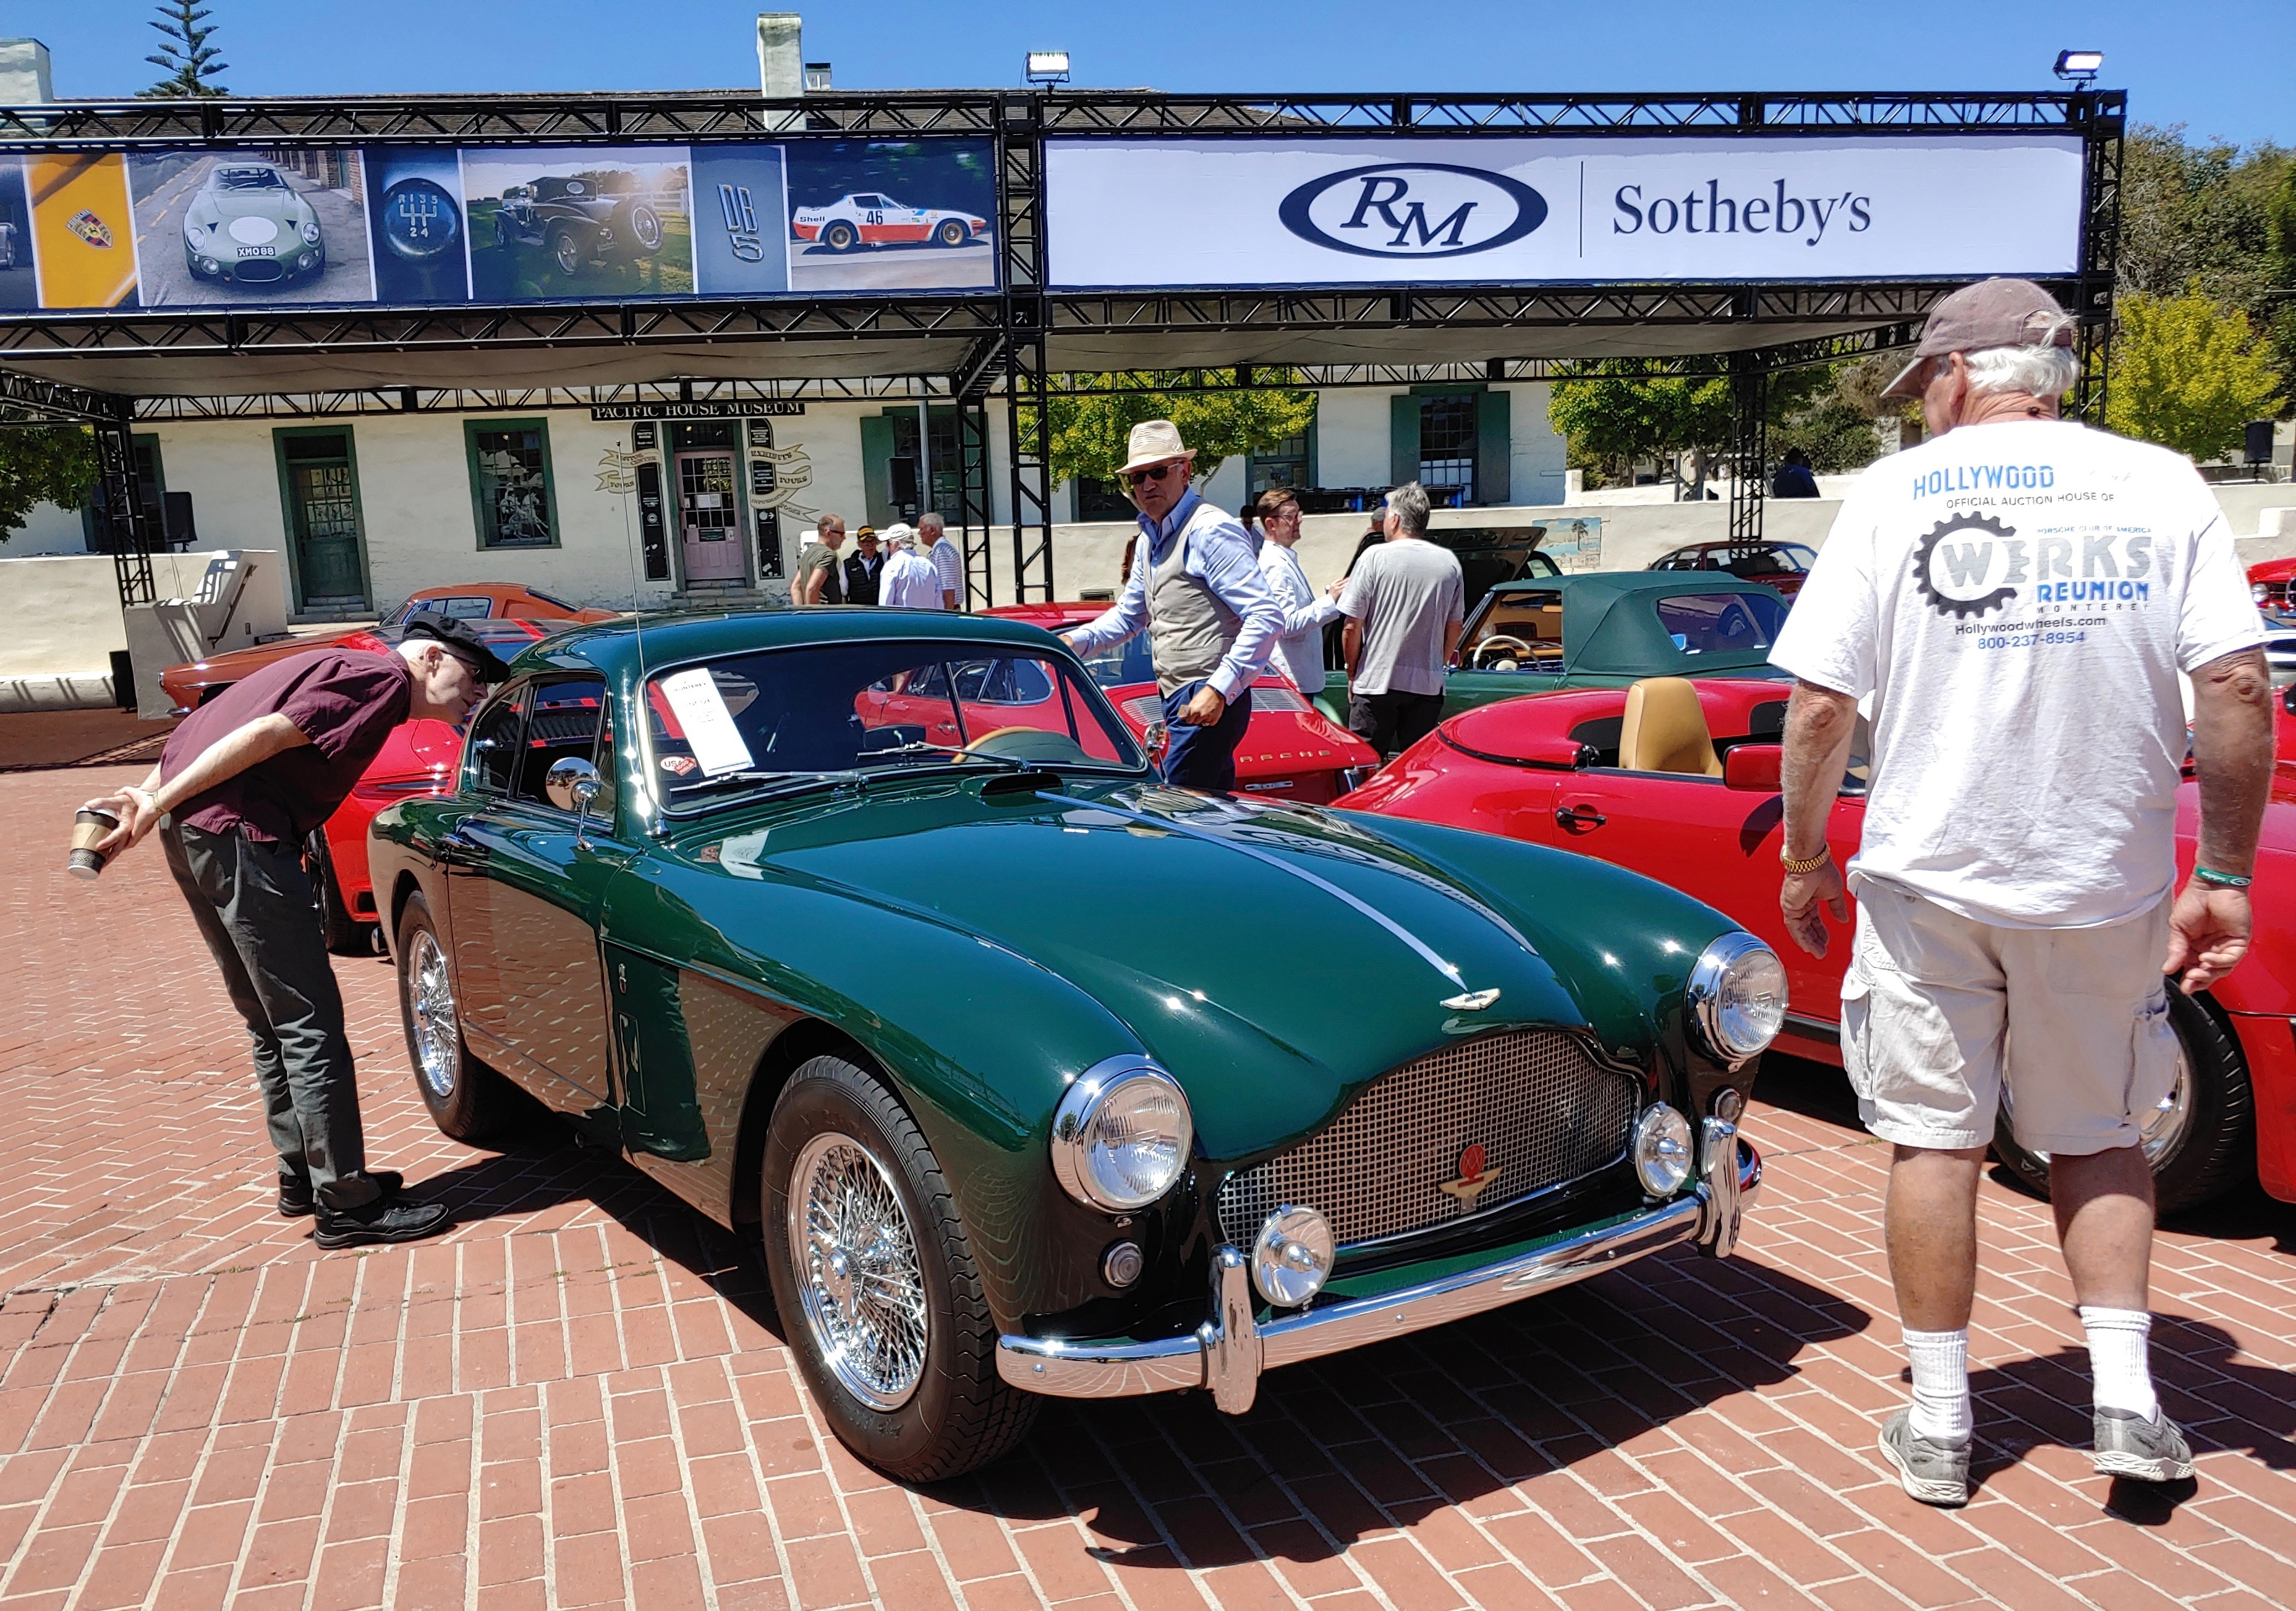 Monterey auction, Andy lists his favorites at RM Sotheby's Monterey auction, ClassicCars.com Journal